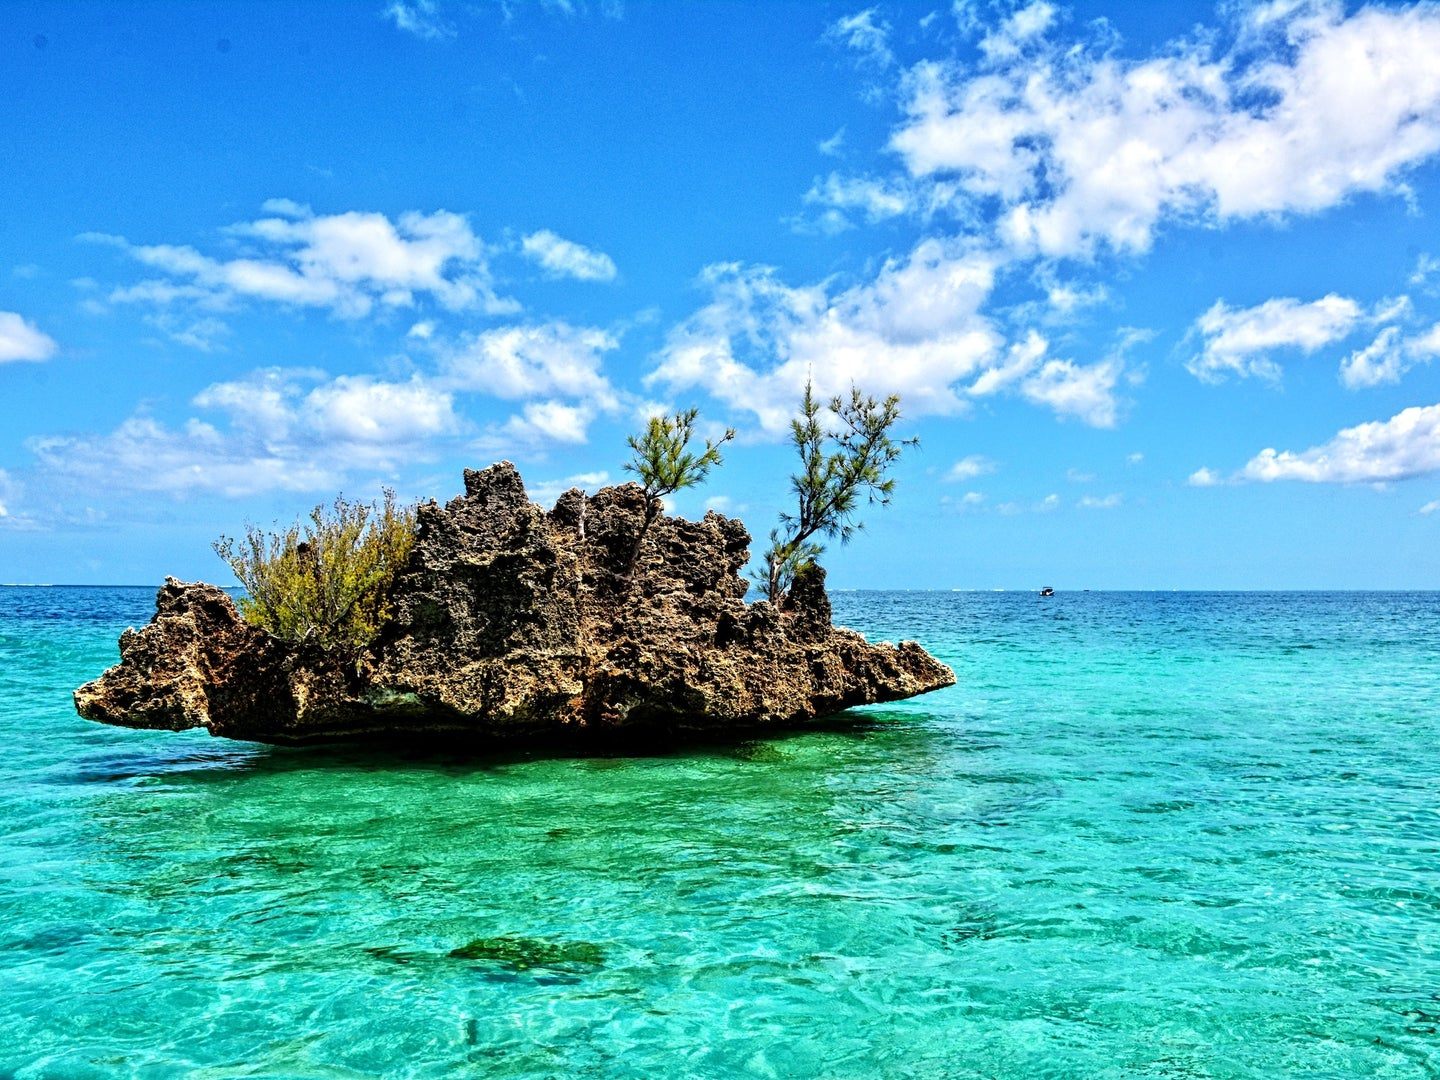 rocky outcropping in very blue tropical waters